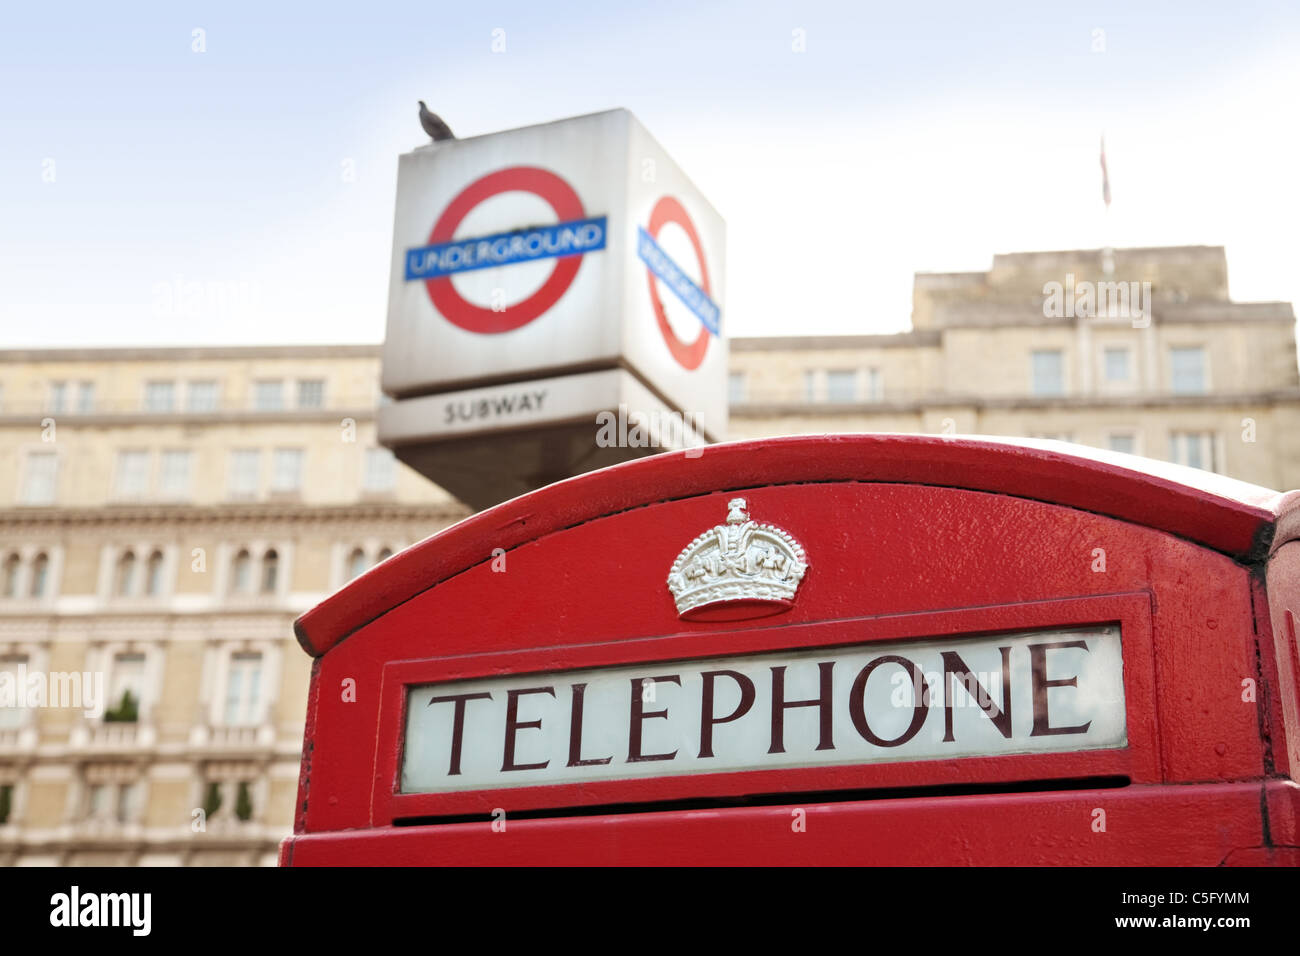 Red telephone box outside Charing Cross station, London UK - Stock Image